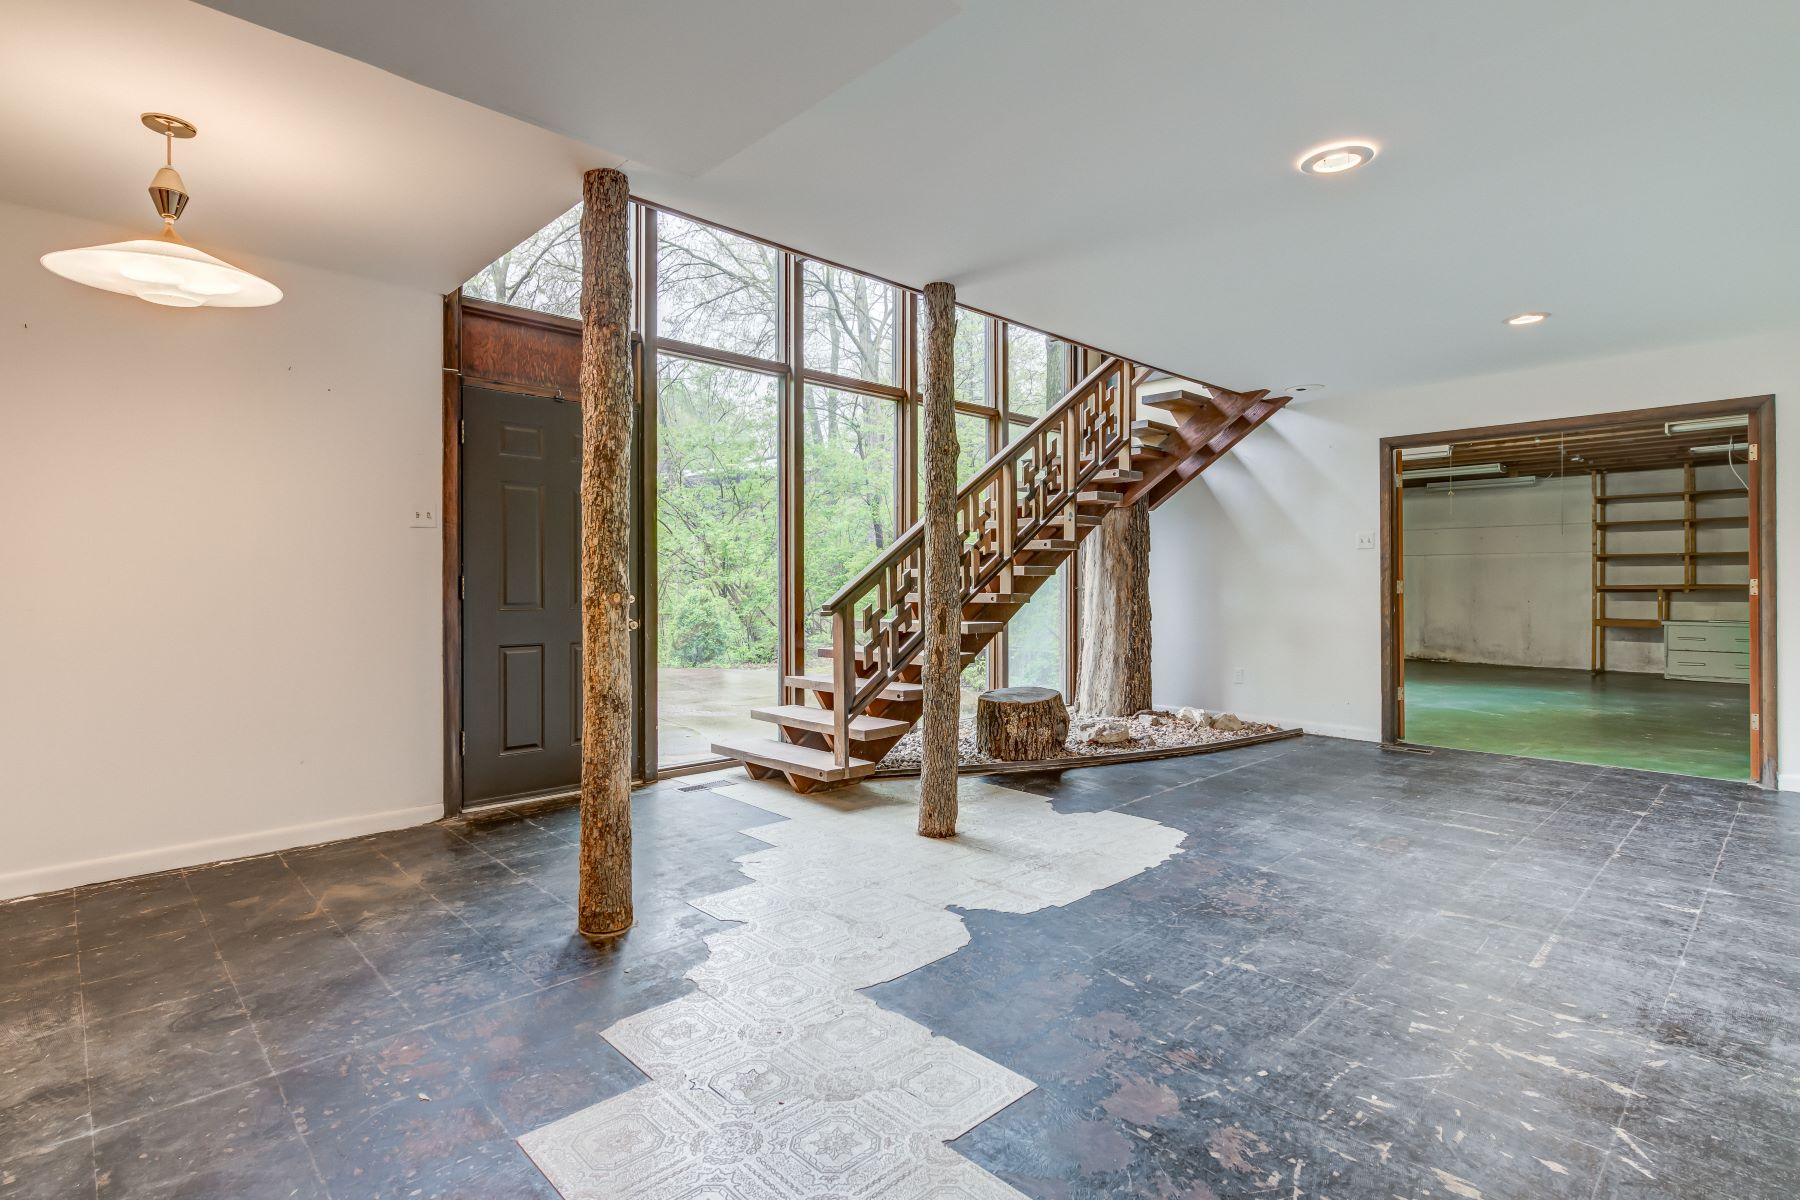 Additional photo for property listing at Contemporary Ladue Home Designed by Warren Jones 8 Sumac Lane Ladue, Missouri 63124 United States